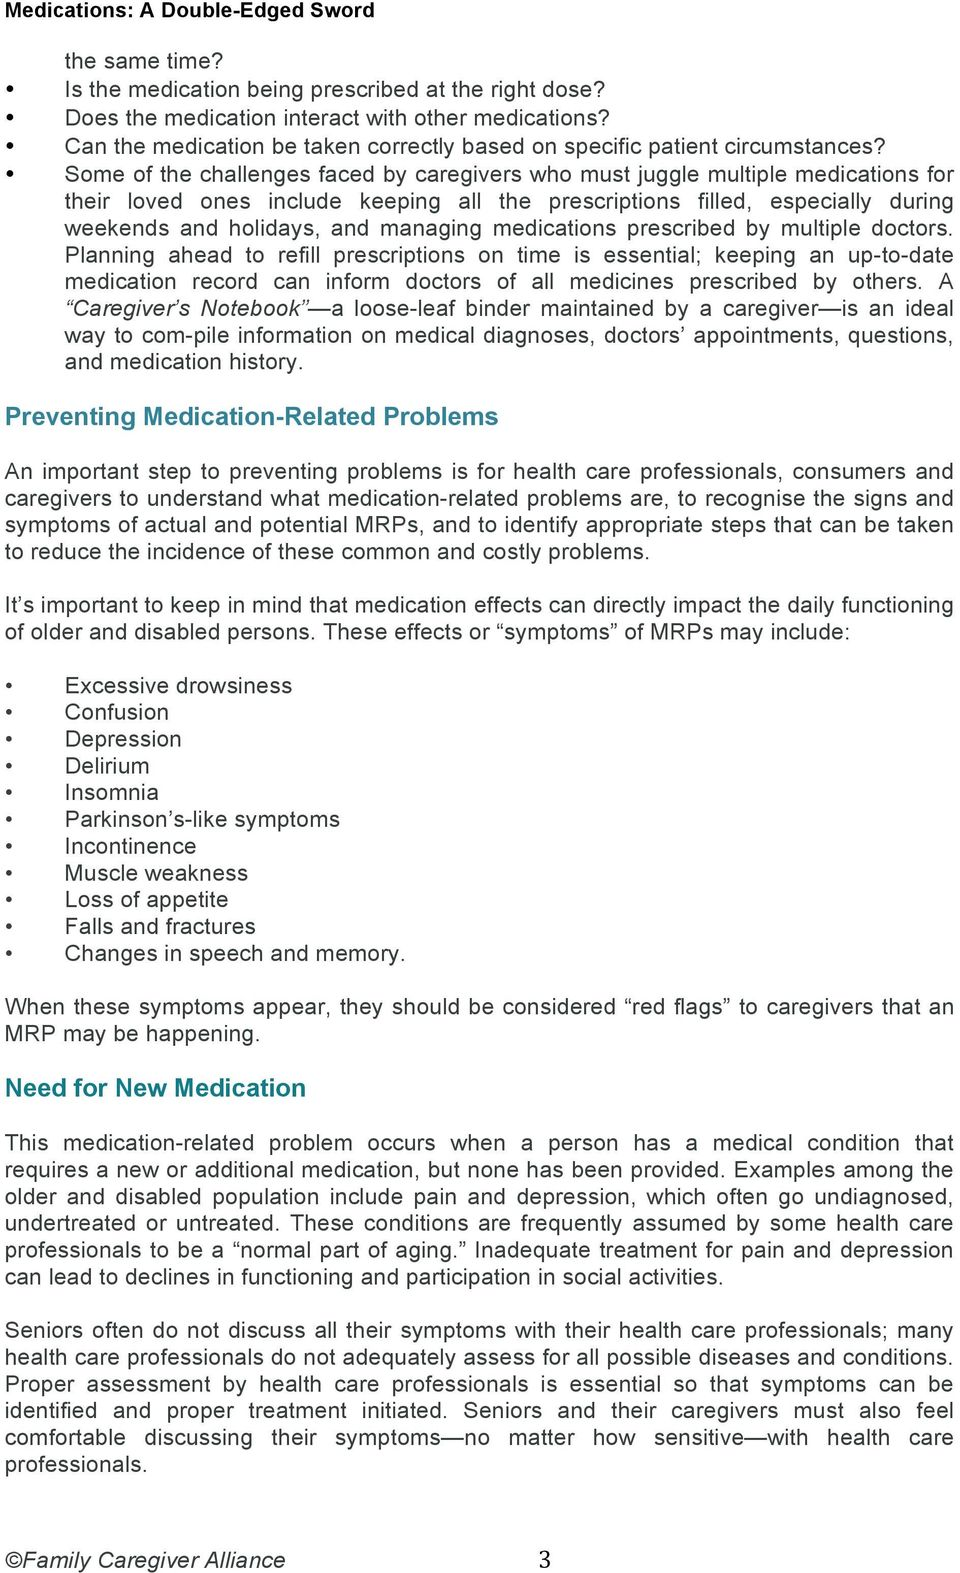 managing medications prescribed by multiple doctors.